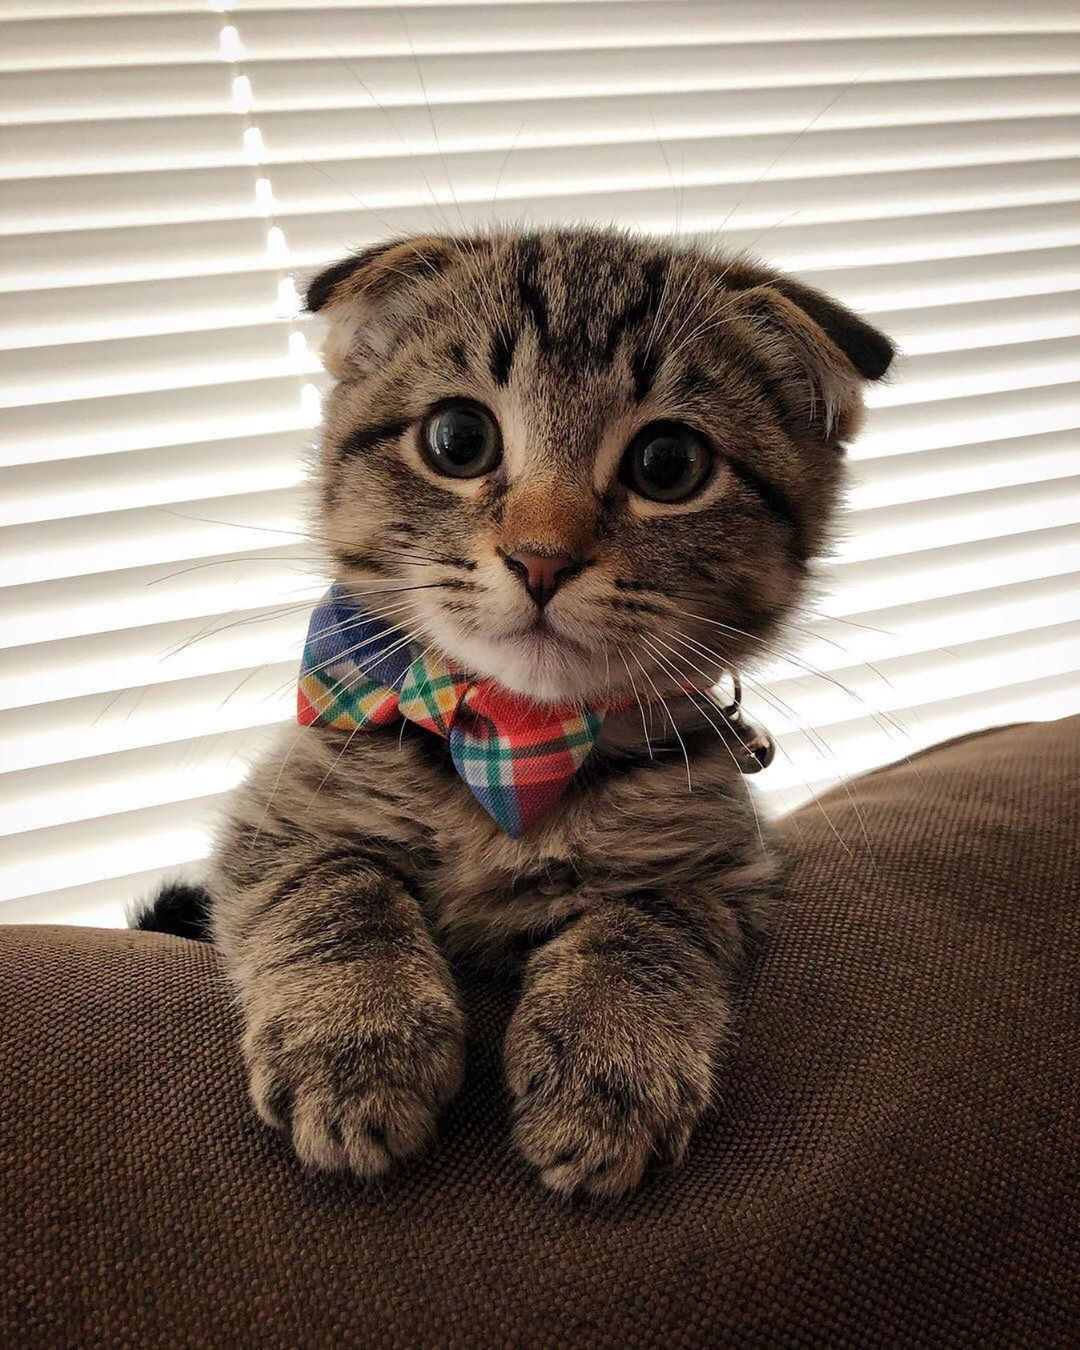 Travelling Through The World C On Instagram Would You Adopt Him Courtesy Of Wallytheseattlescotty Founder Kittens Cutest Cat Scottish Fold Cute Animals